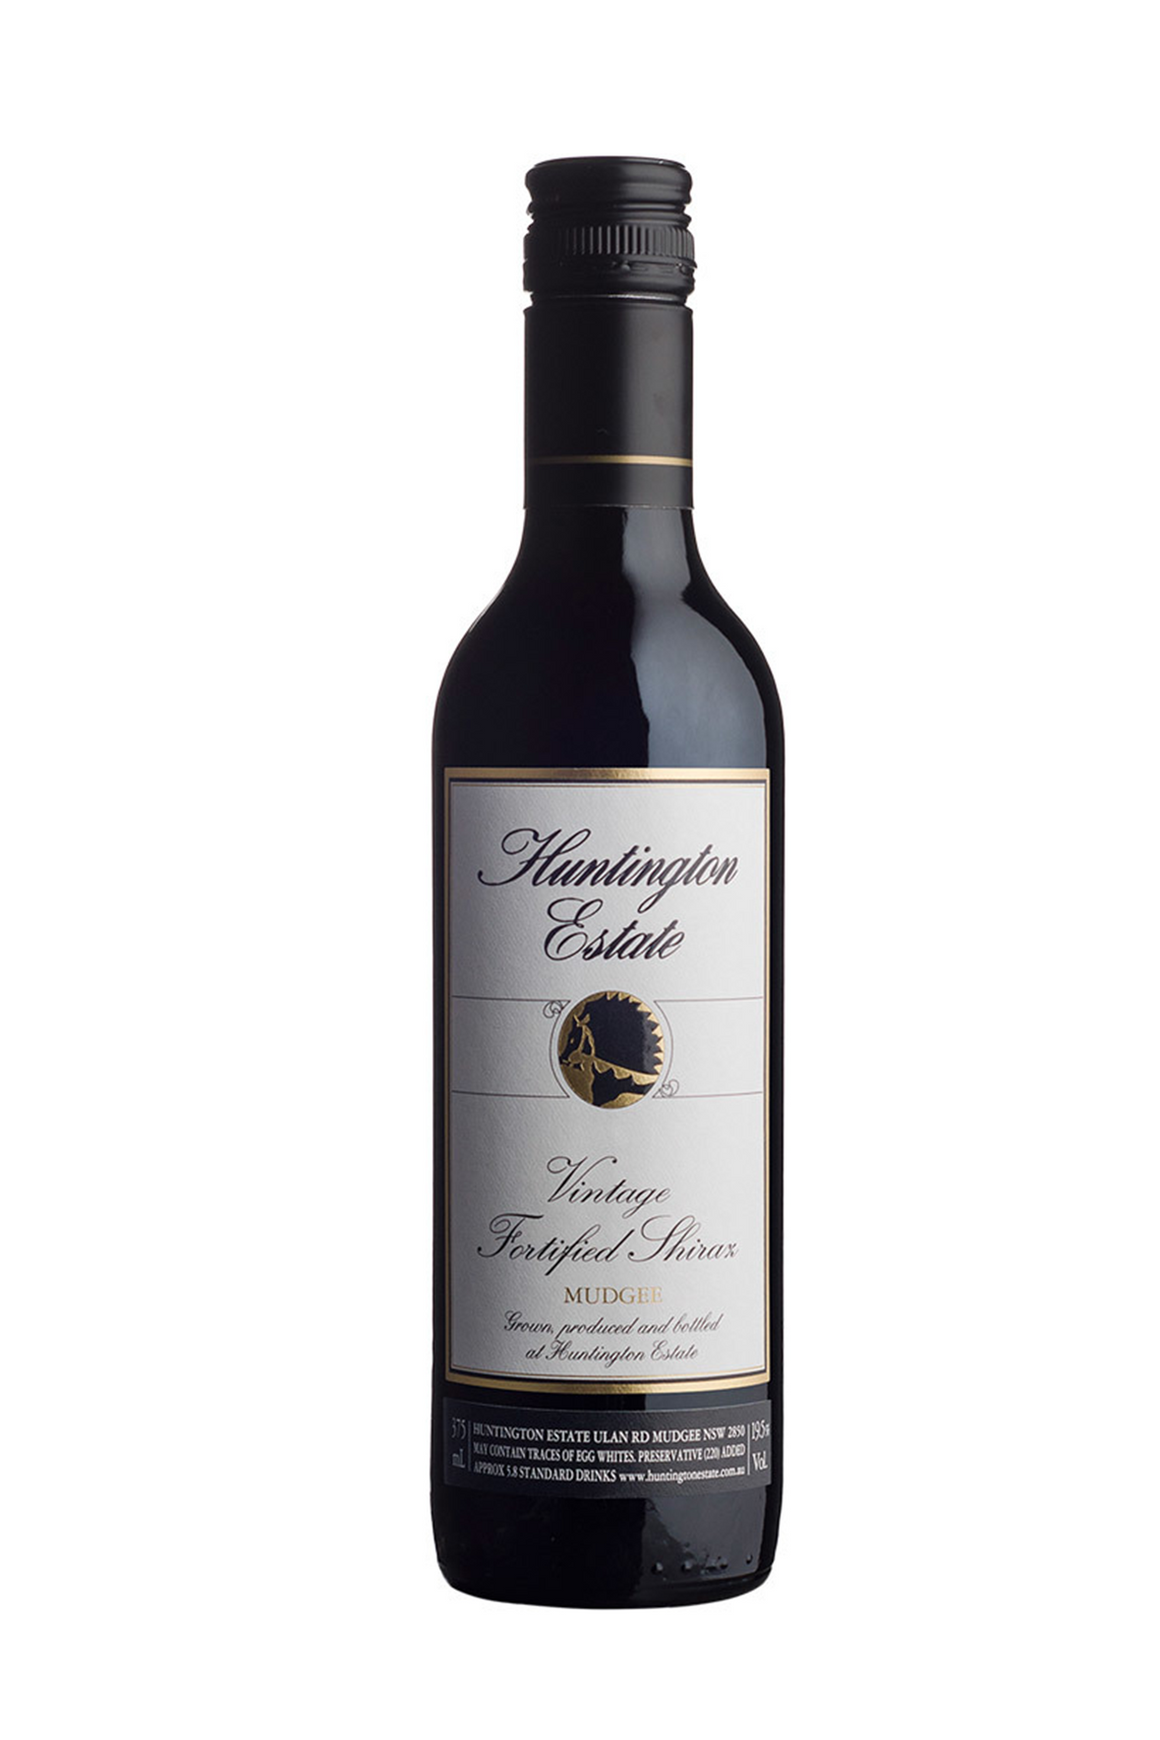 Huntington Estate - Vintage Fortified Shiraz 2012